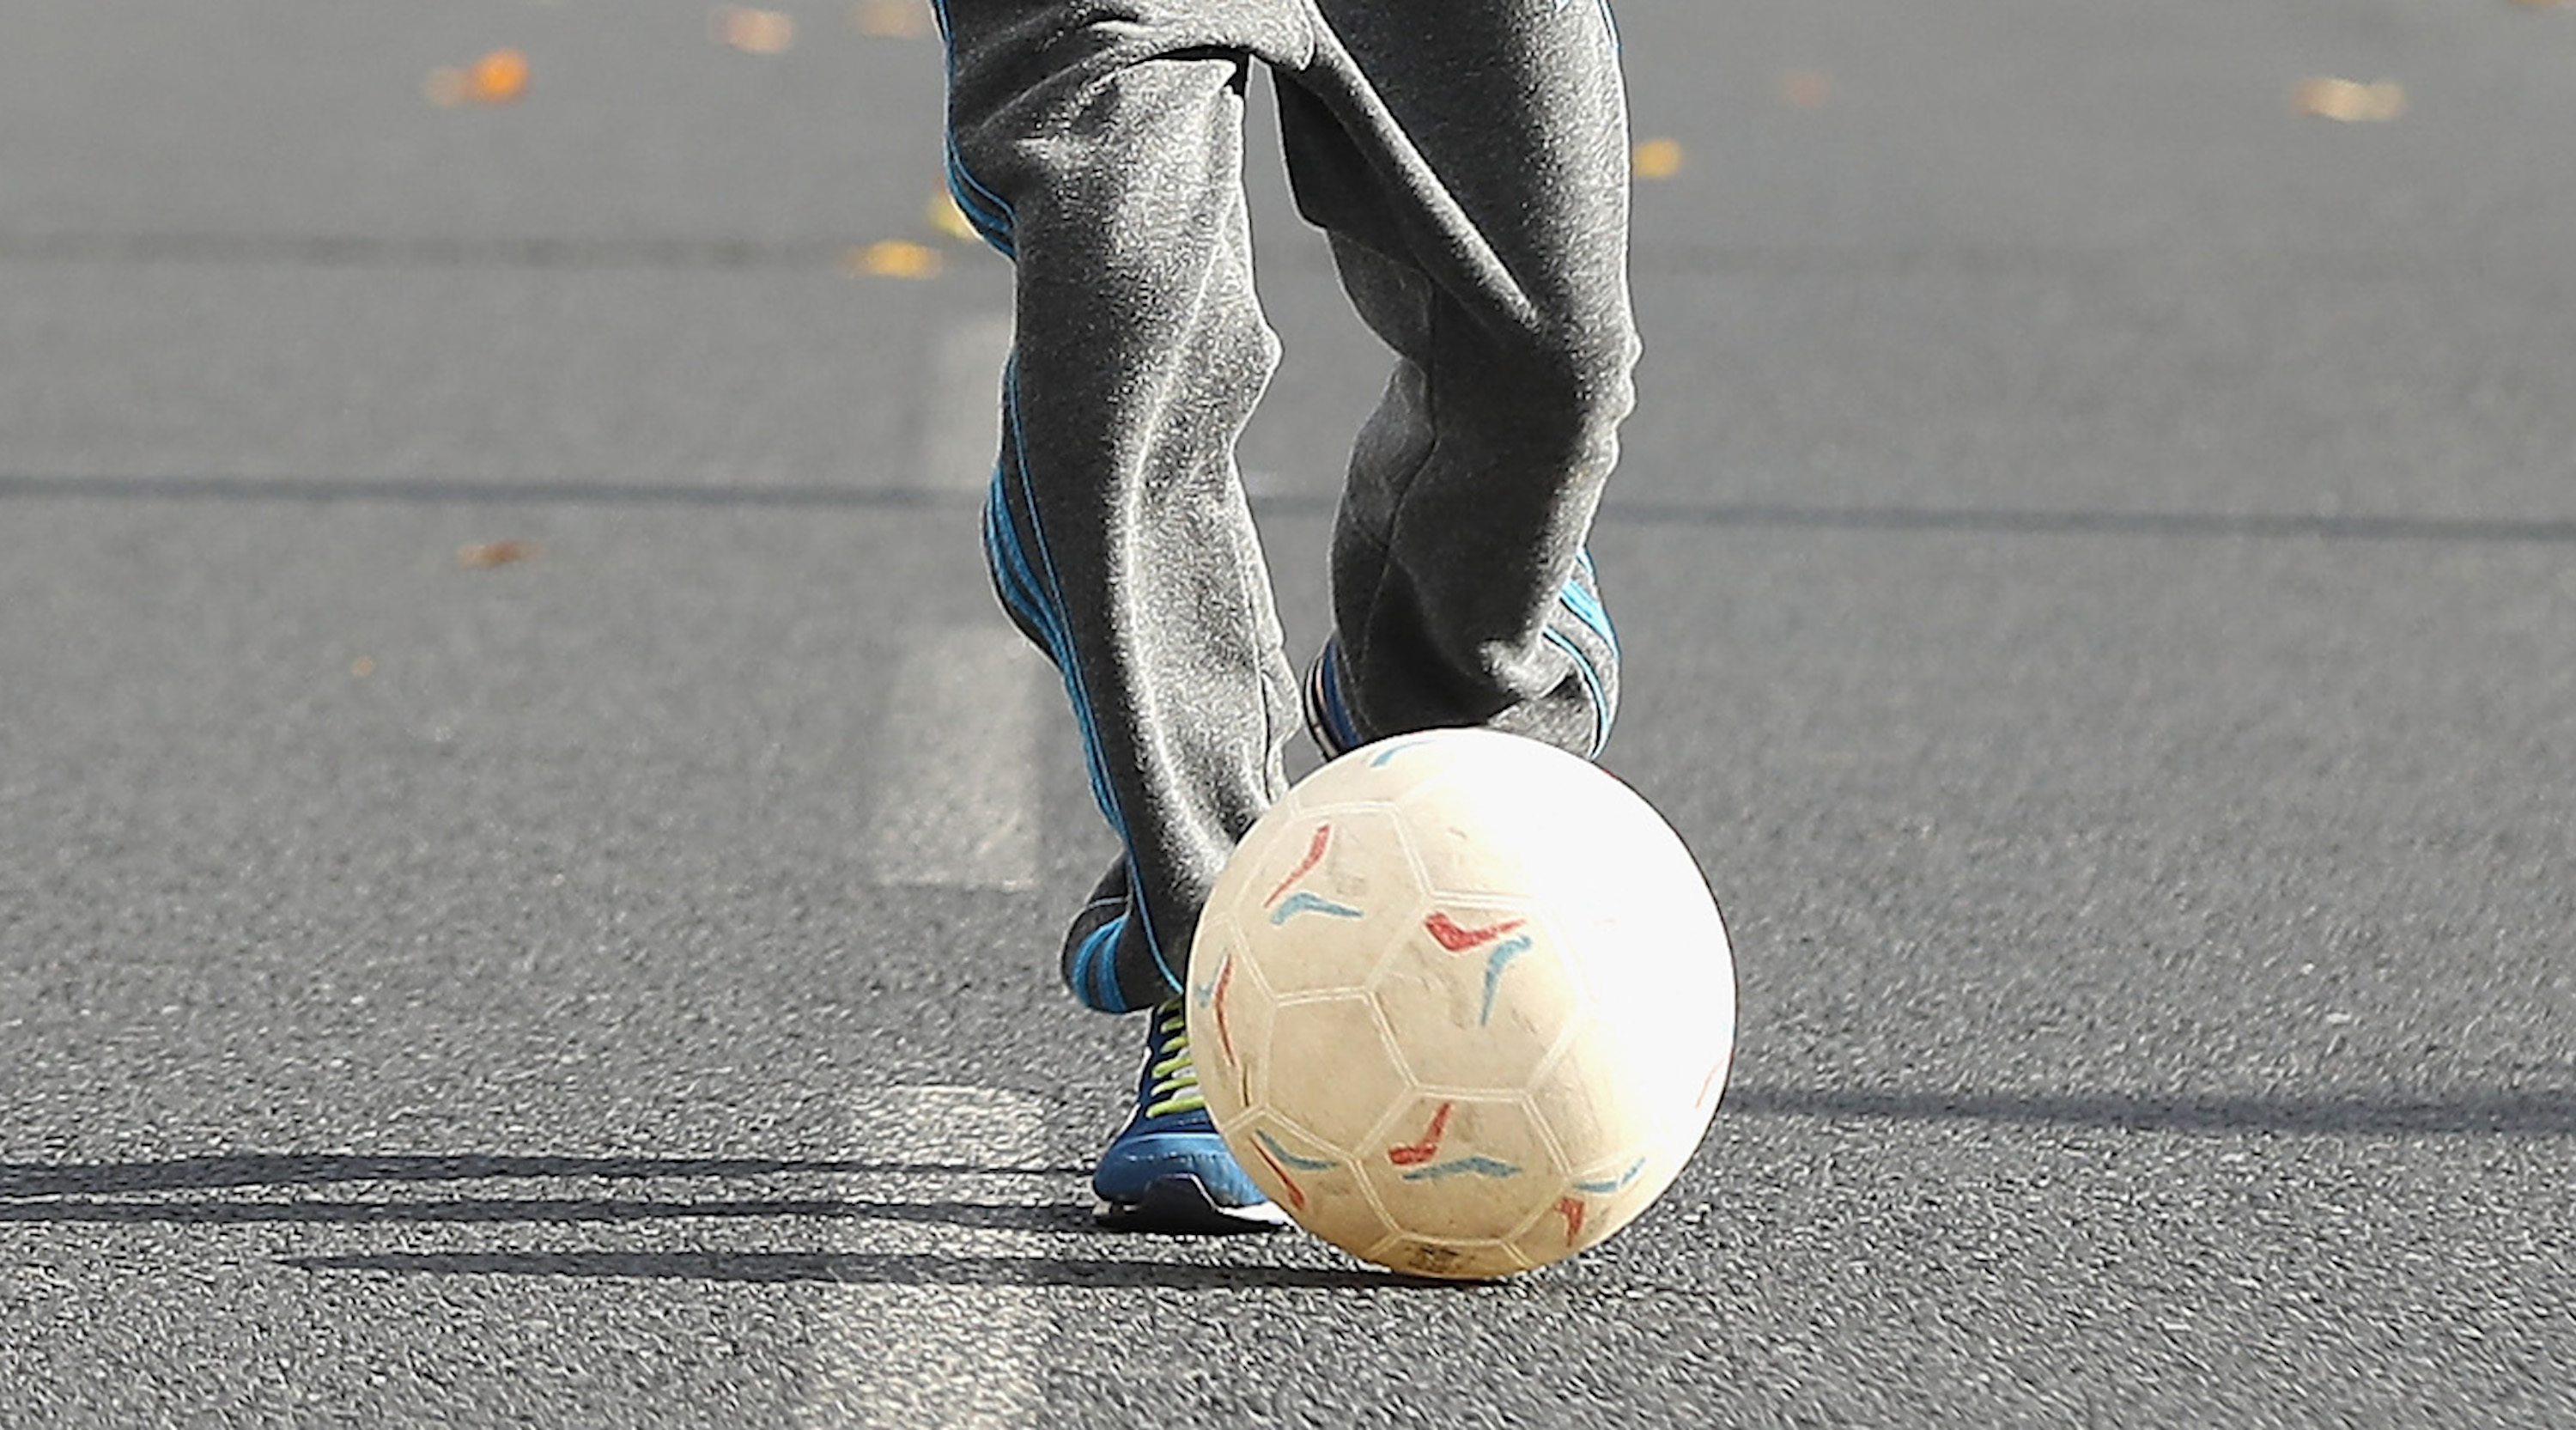 BURNLEY, ENGLAND - OCTOBER 22: A young Burnley fan plays football in a near by street during the Premier League match between Burnley and Everton at Turf Moor on October 22, 2016 in Burnley, England. (Photo by Chris Brunskill/Getty Images)